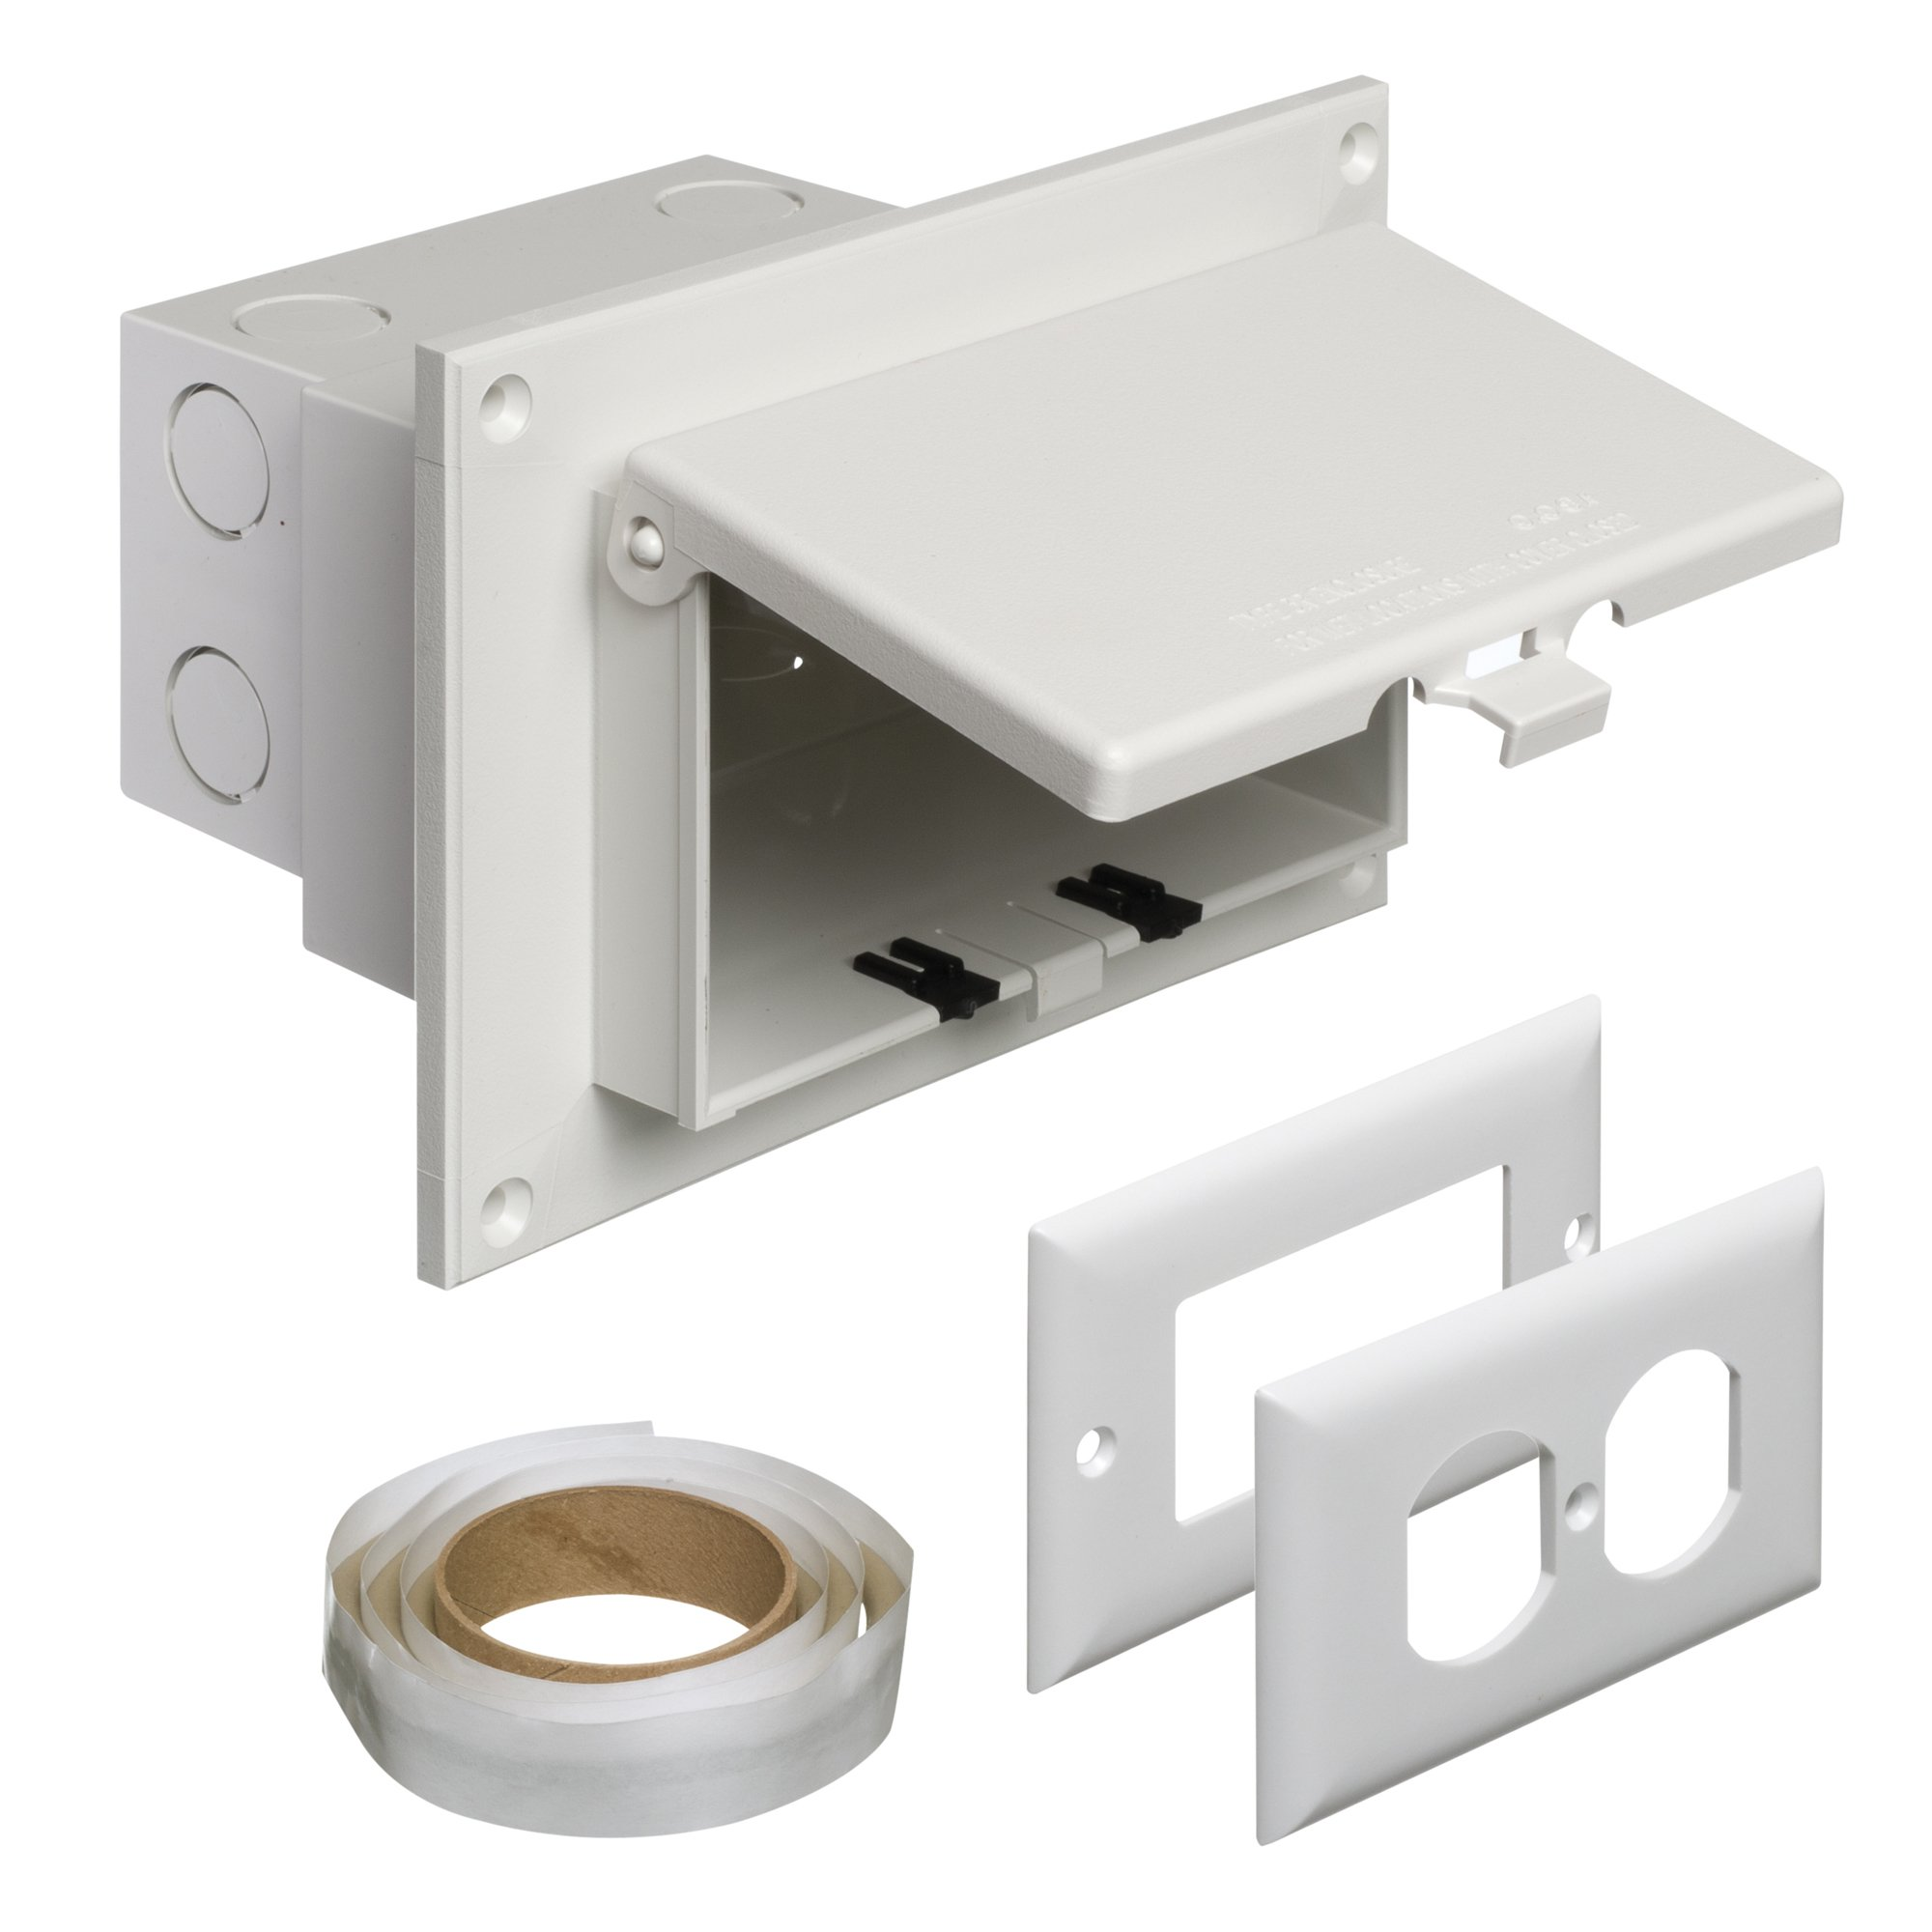 Surface mount outdoor electrical outlet for Exterior electrical outlet box